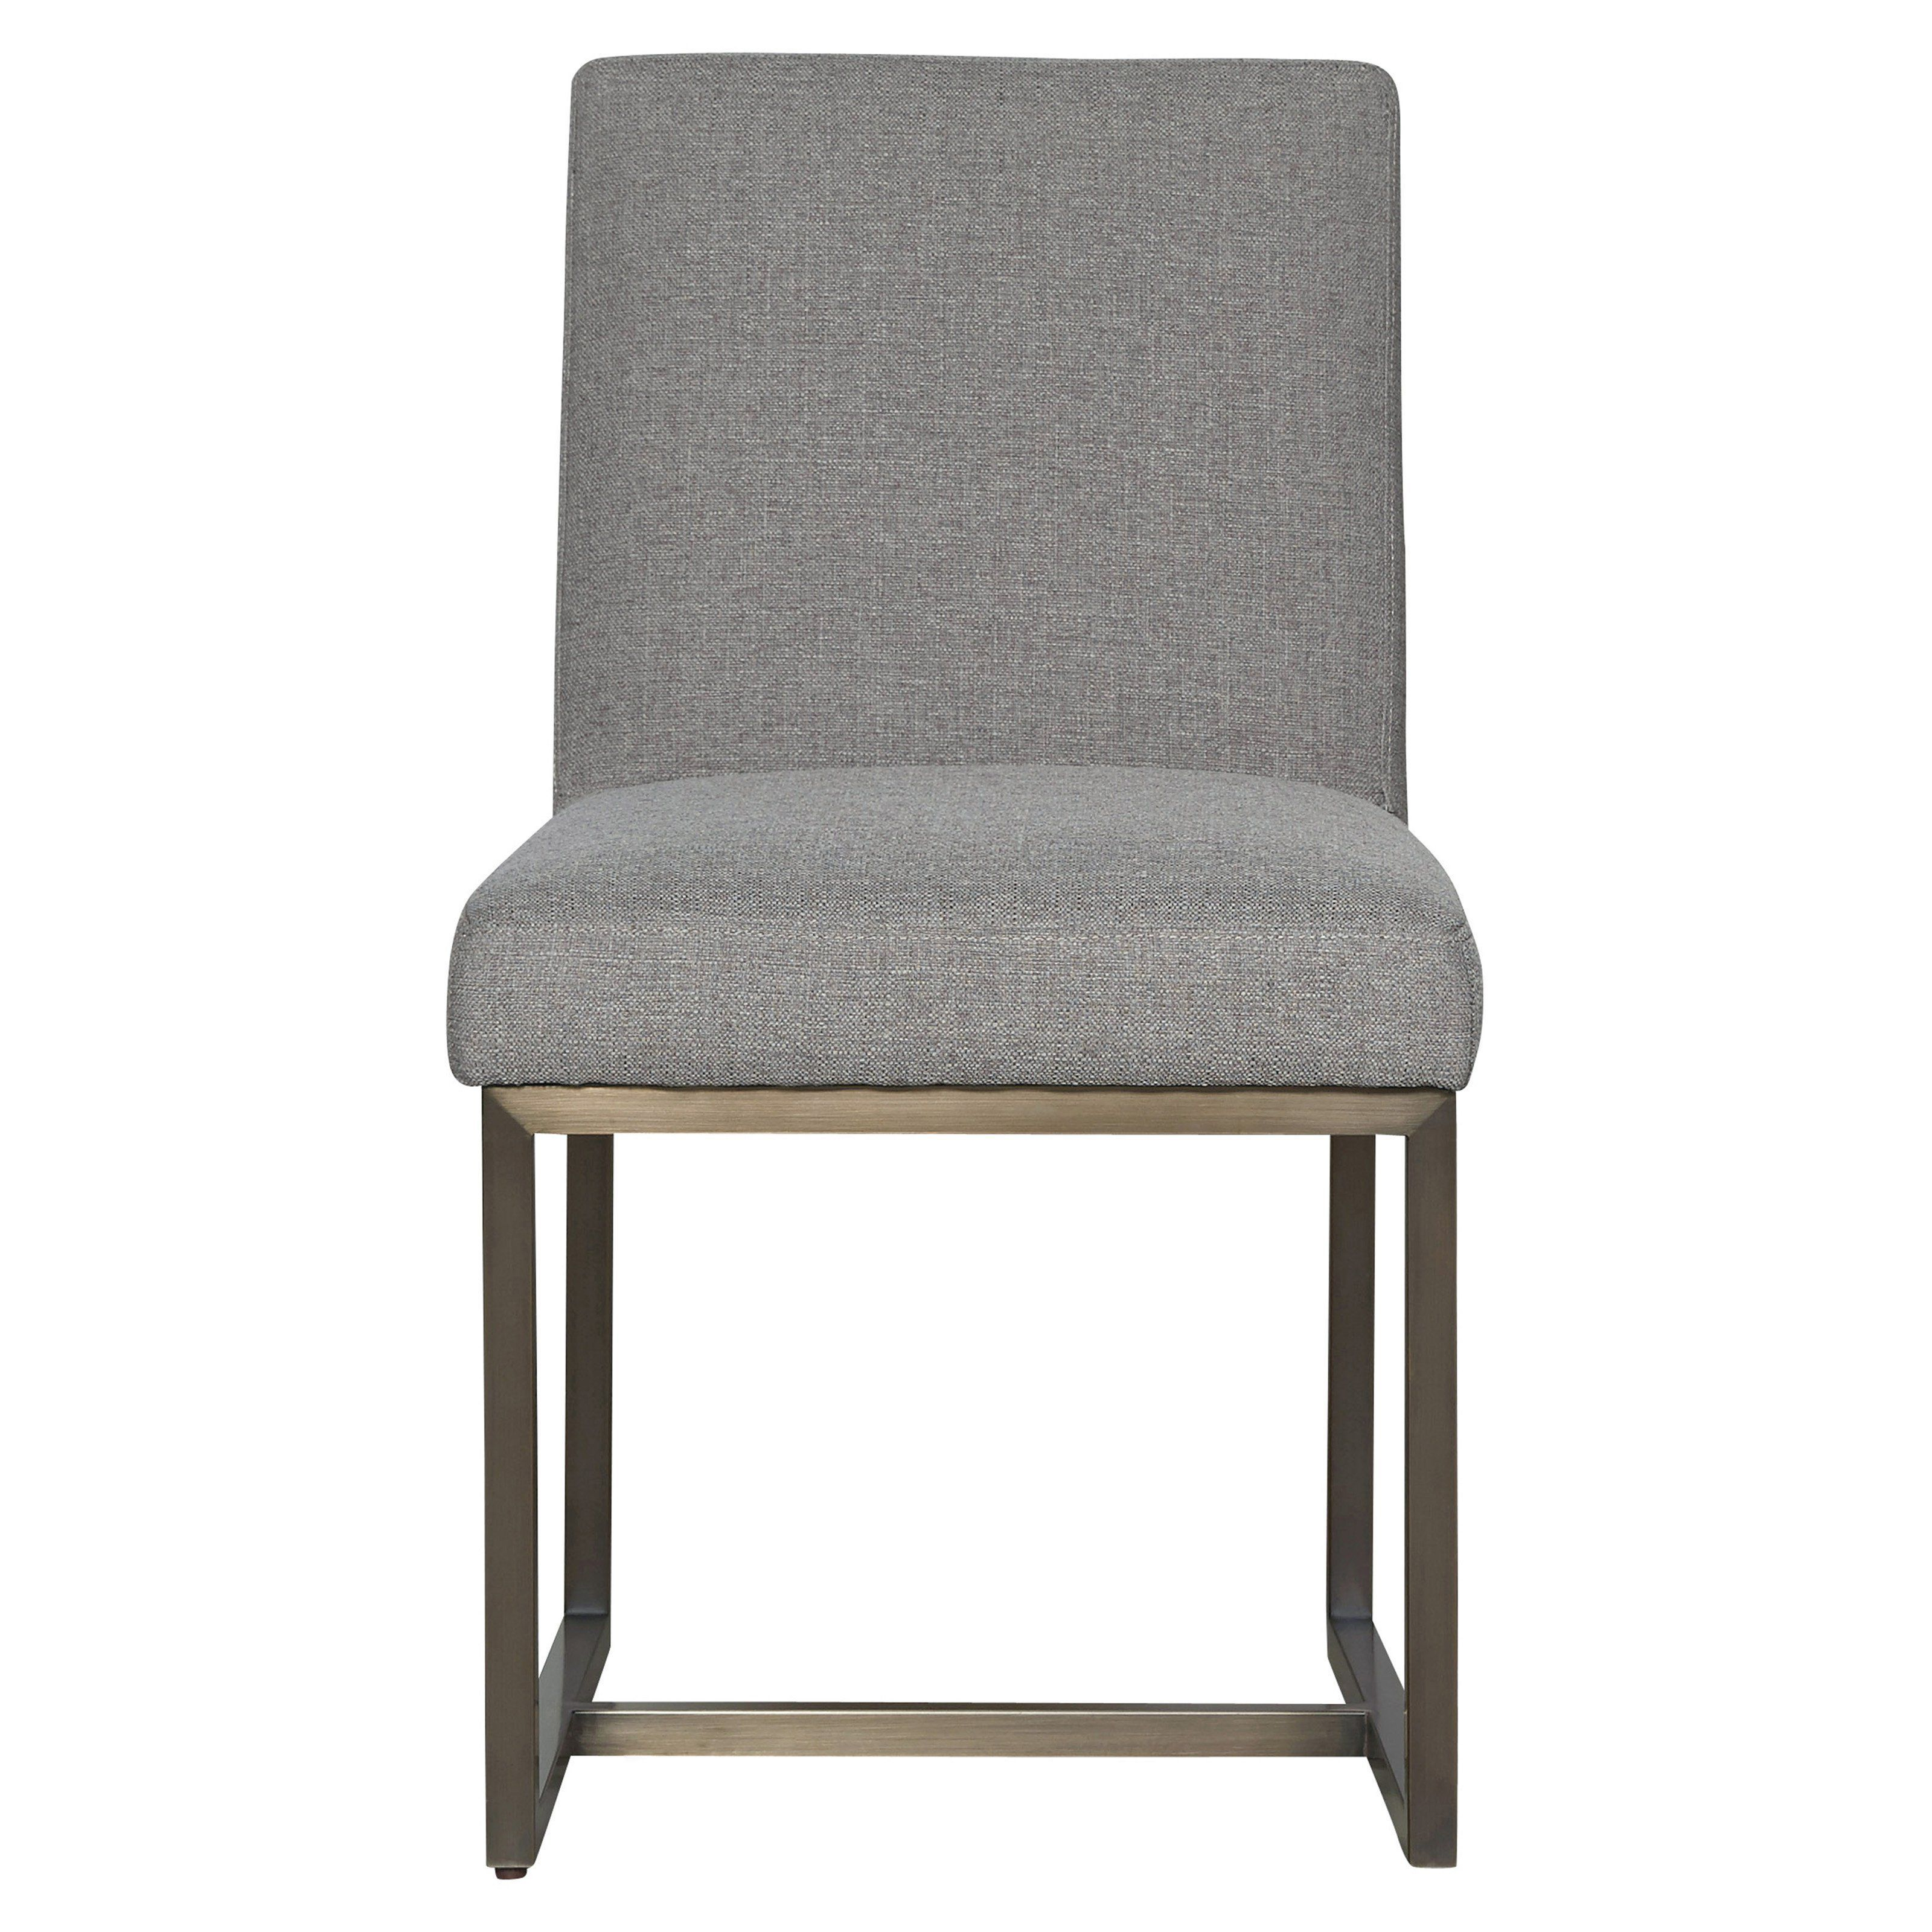 Universal furniture cooper side chair unir products